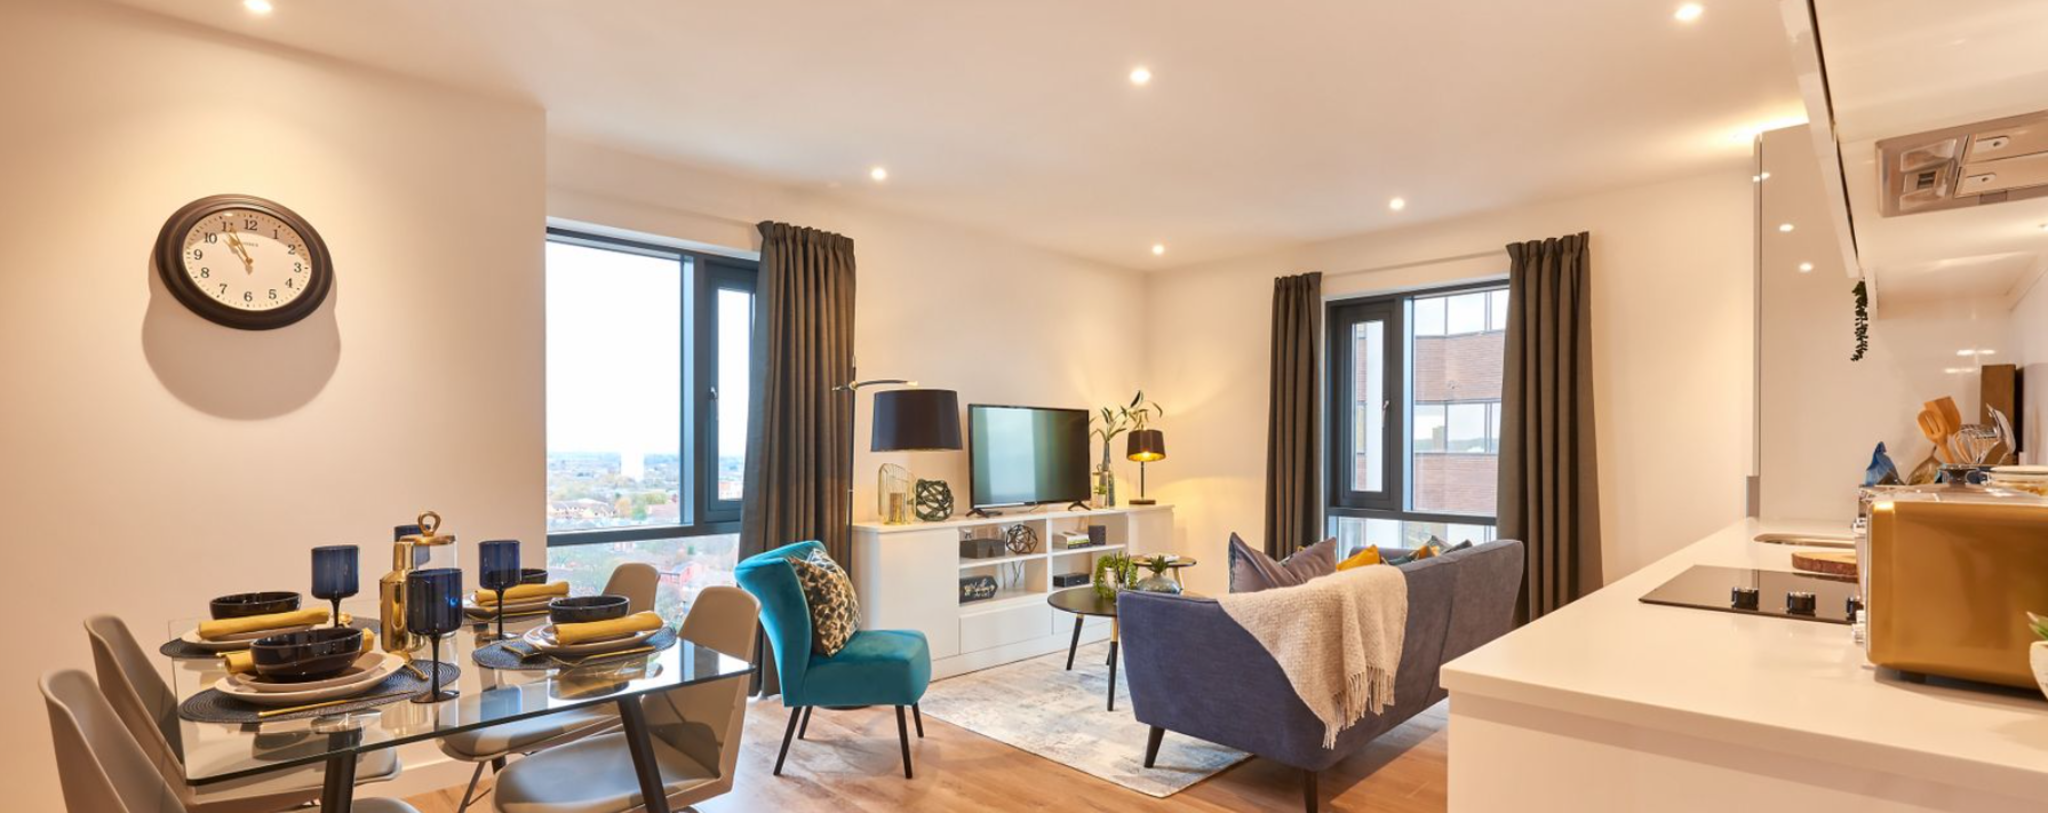 Contractors Accommodation and Corporate Housing in Birmingham | Comfy  Workers